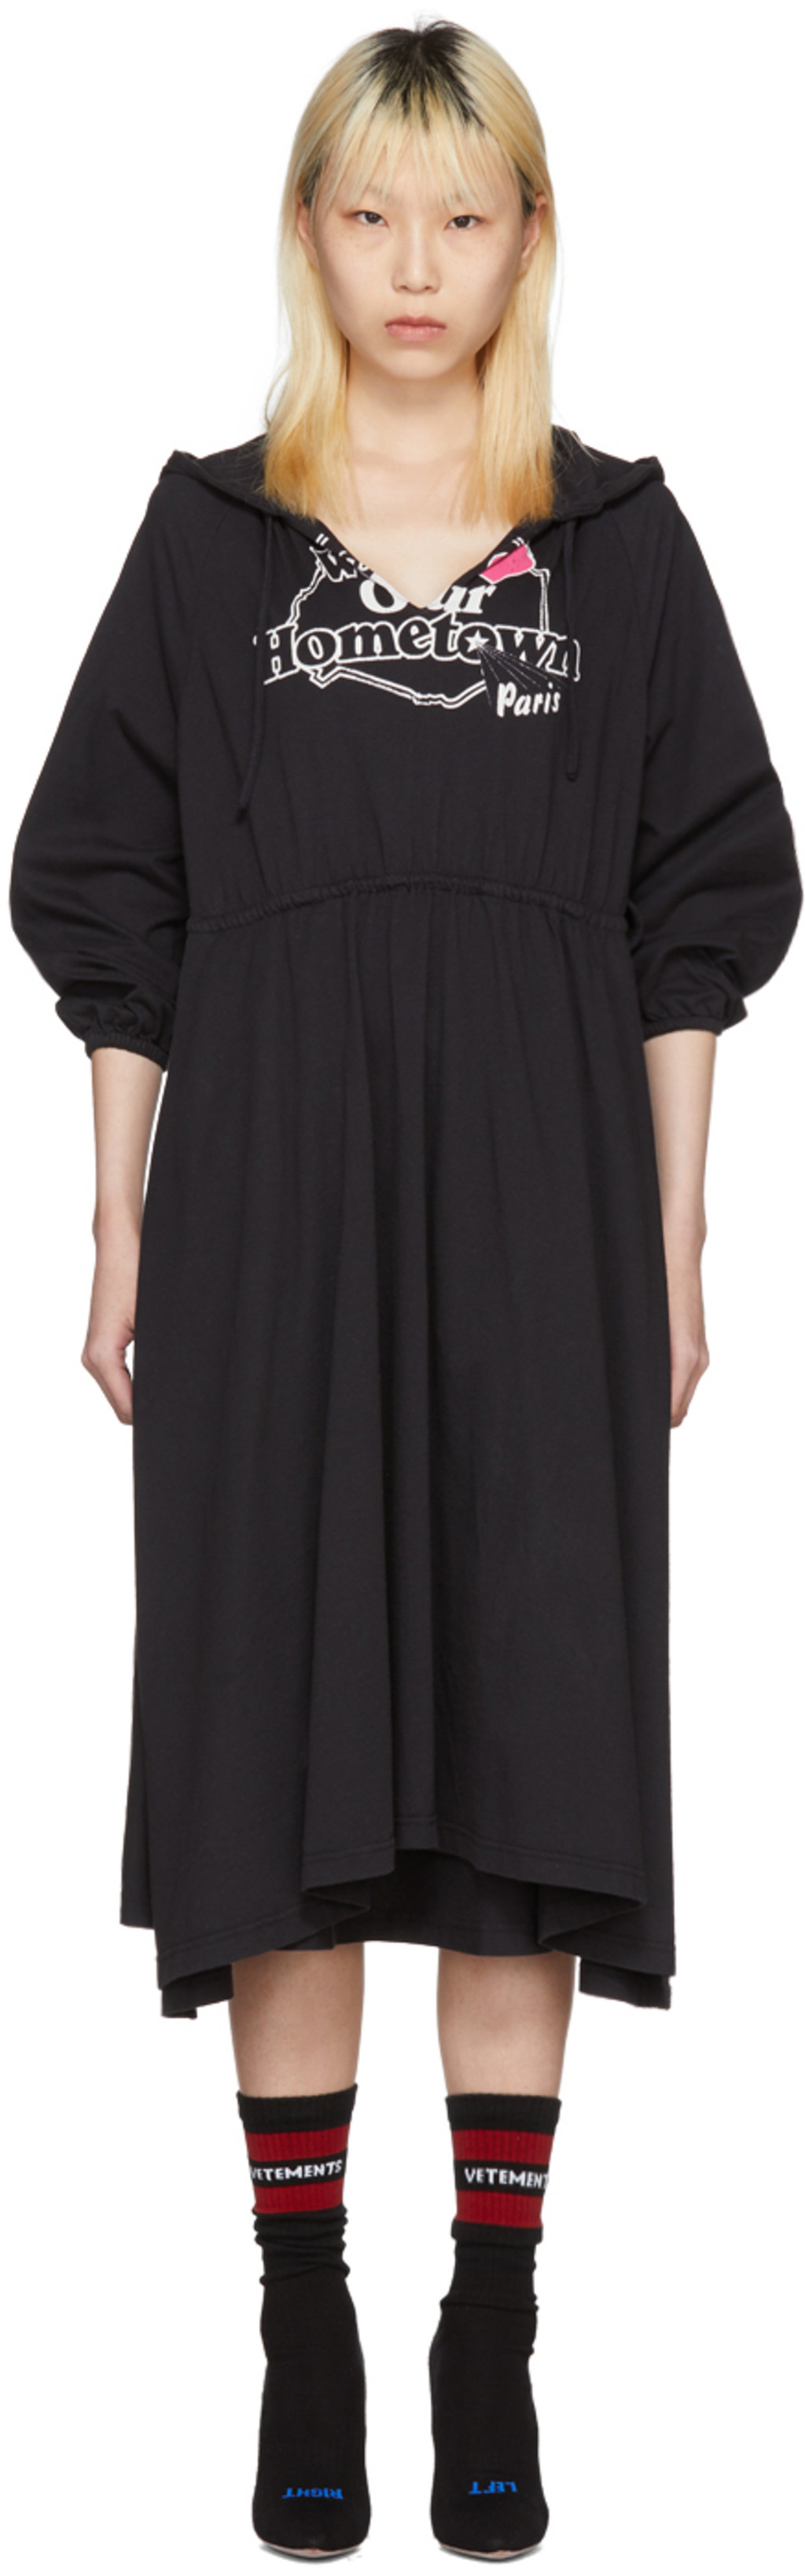 Black Hometown Hooded Jersey Dress VETEMENTS sBcvWdZe2U